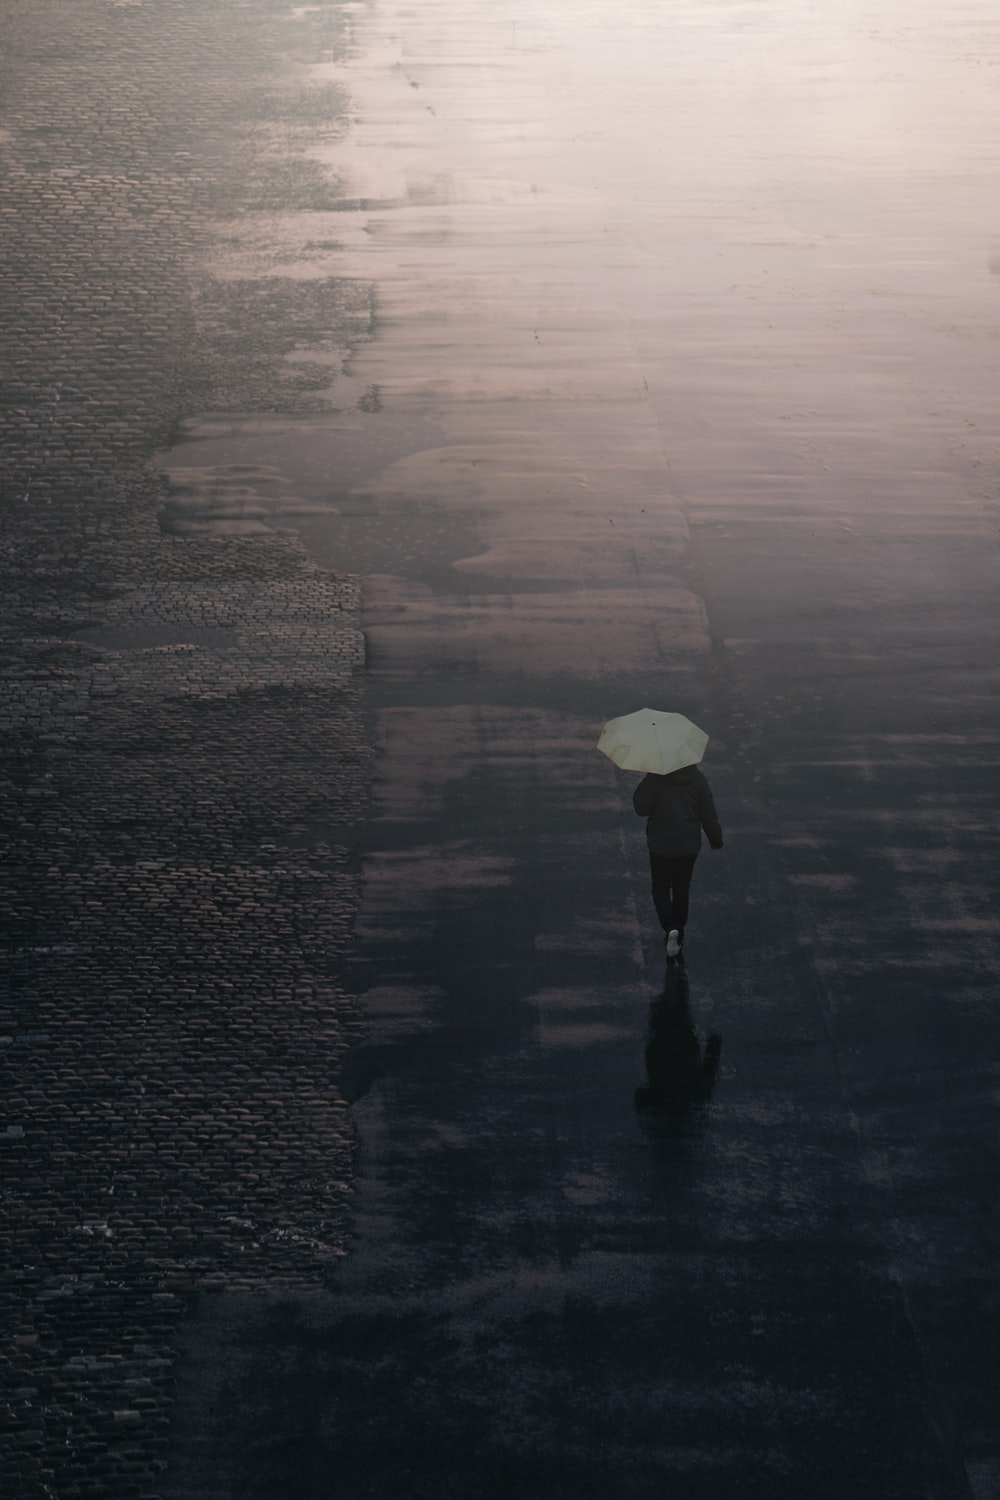 person in black jacket holding white umbrella walking on wet road during daytime